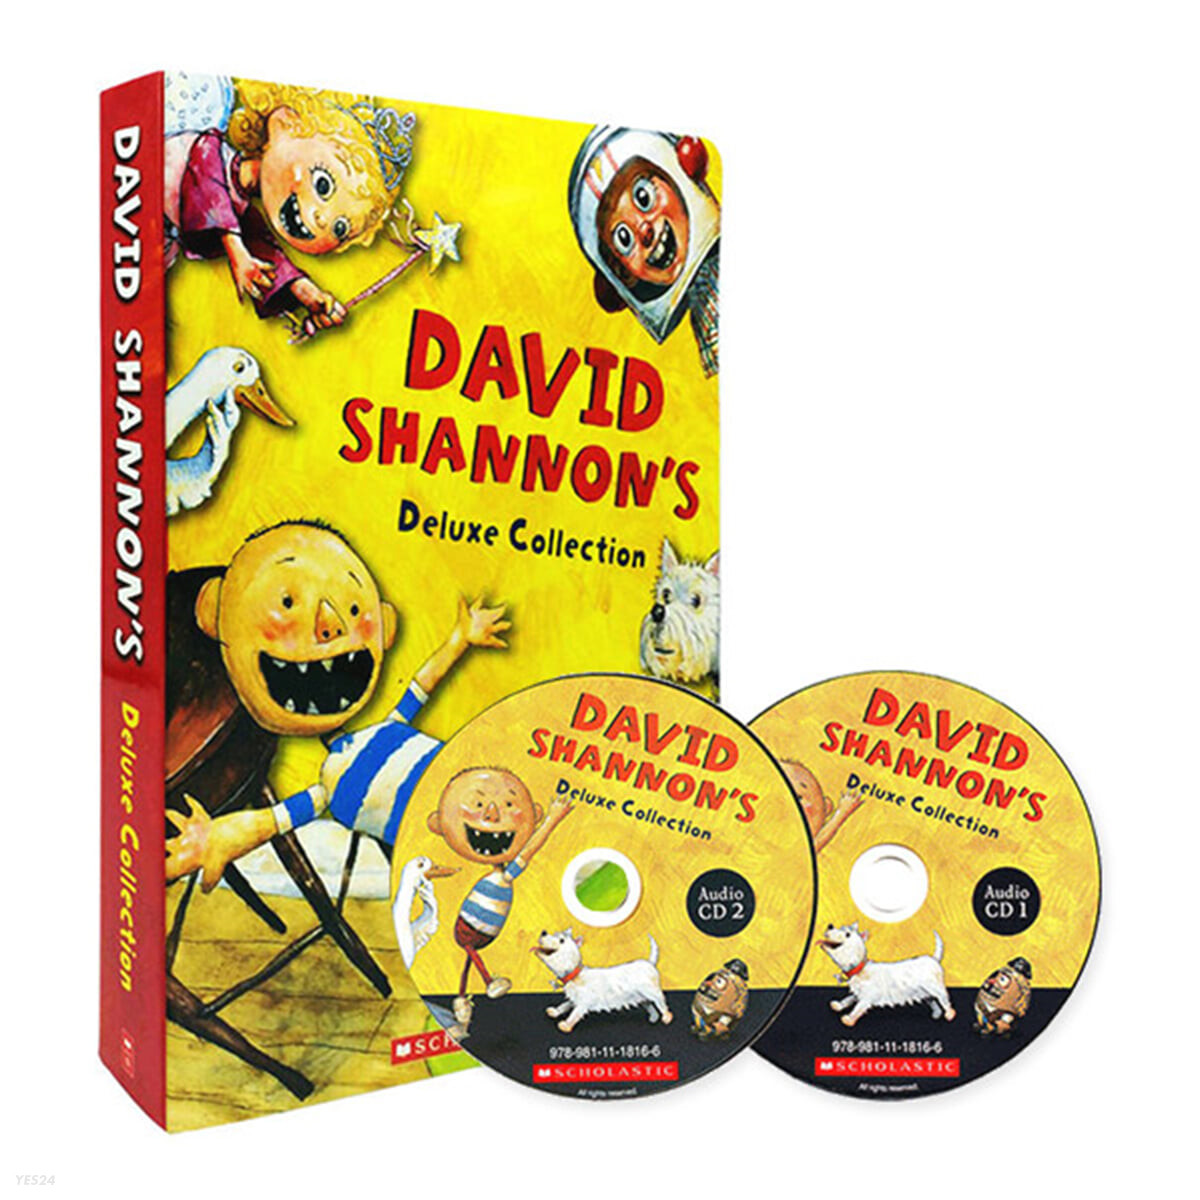 David Shannon Deluxe Collection (10 Books & CD)